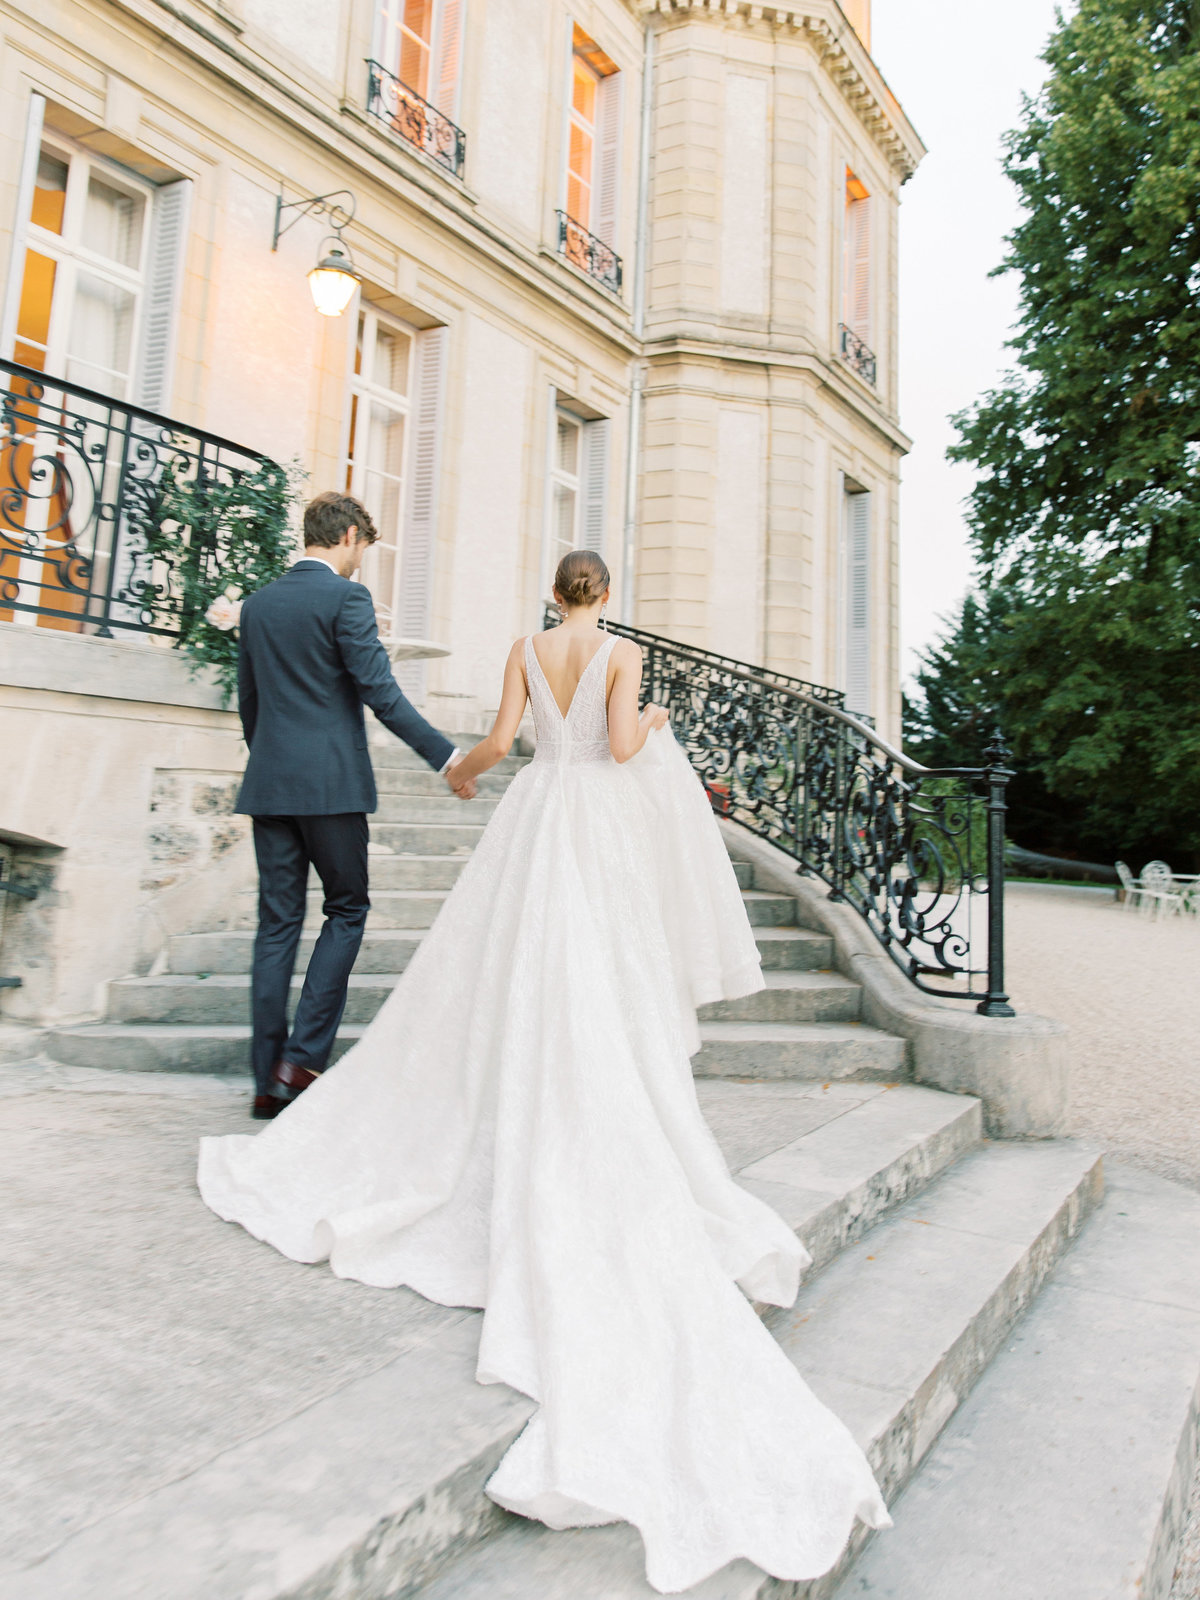 Luxurious french chateau wedding amelia soegijono0044